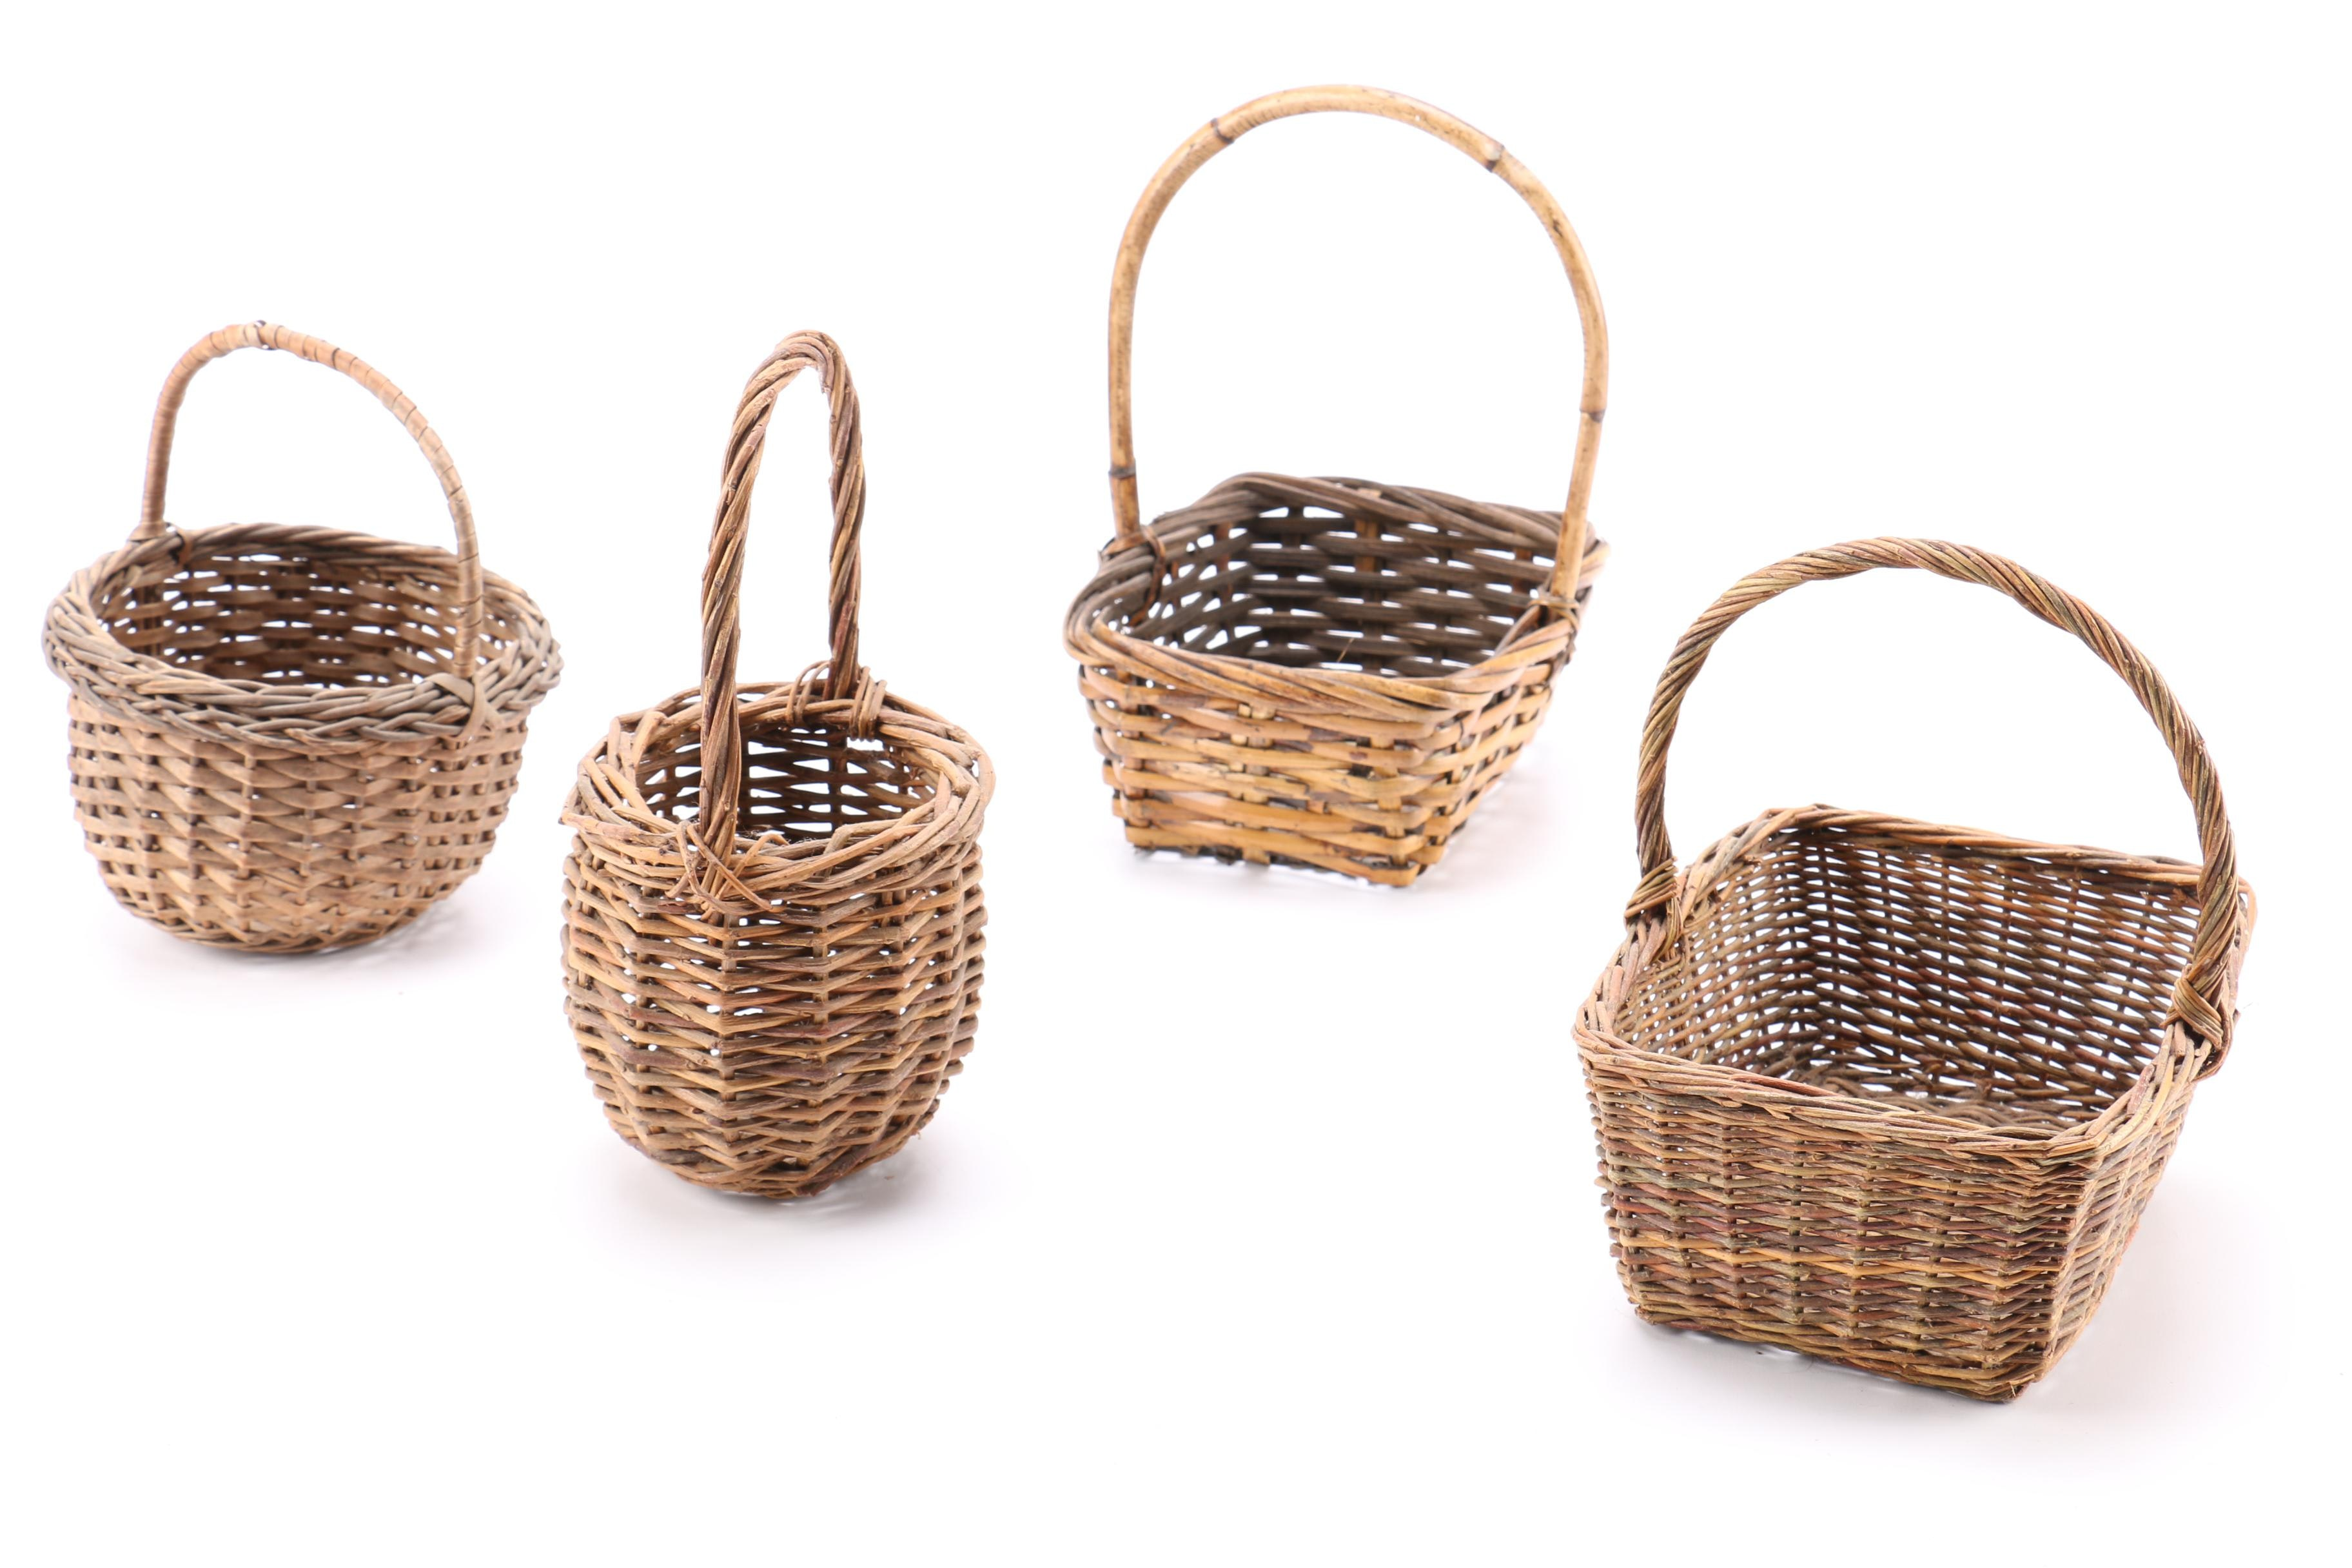 Collection of Woven Decorative Baskets